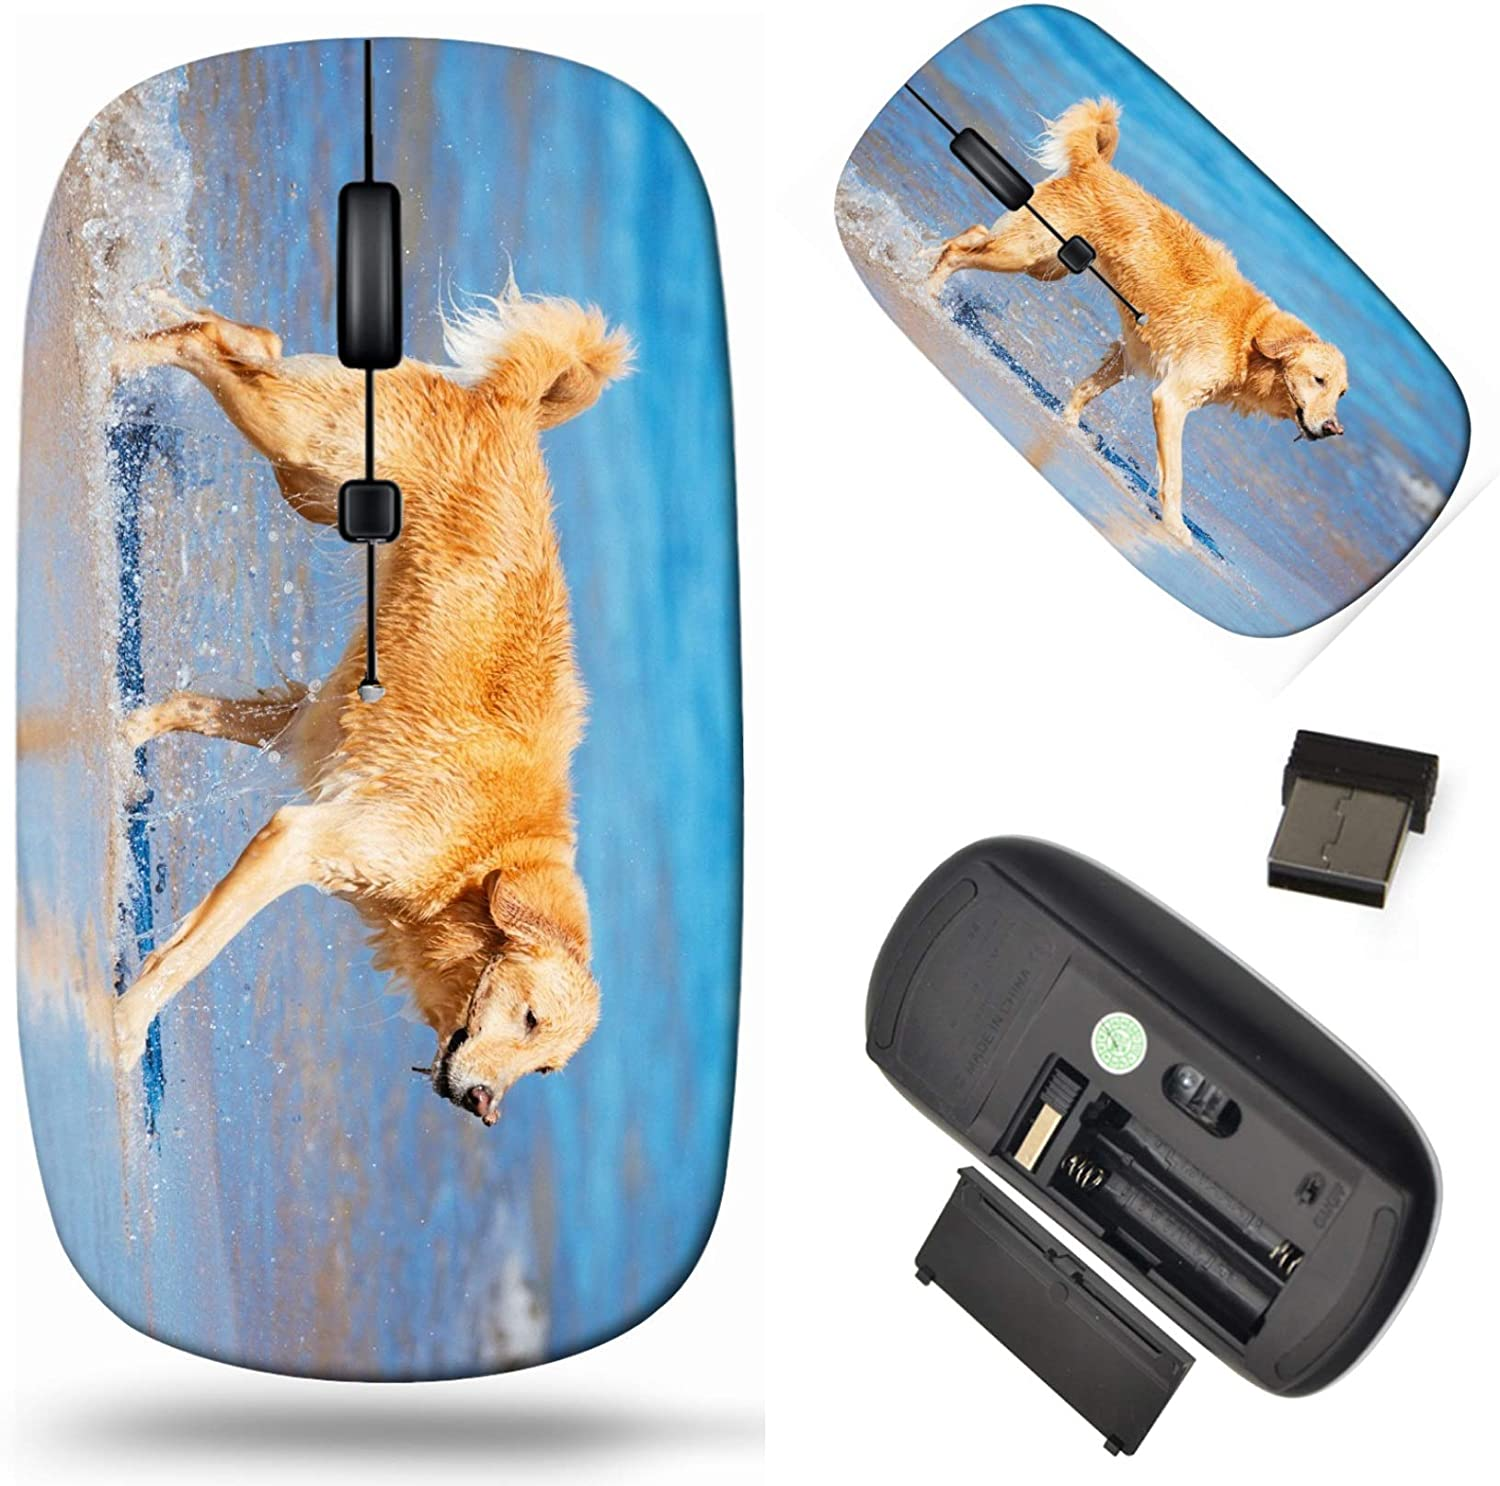 Wireless Computer Mouse 2.4G unisex with Laptop USB Cor Dedication Receiver